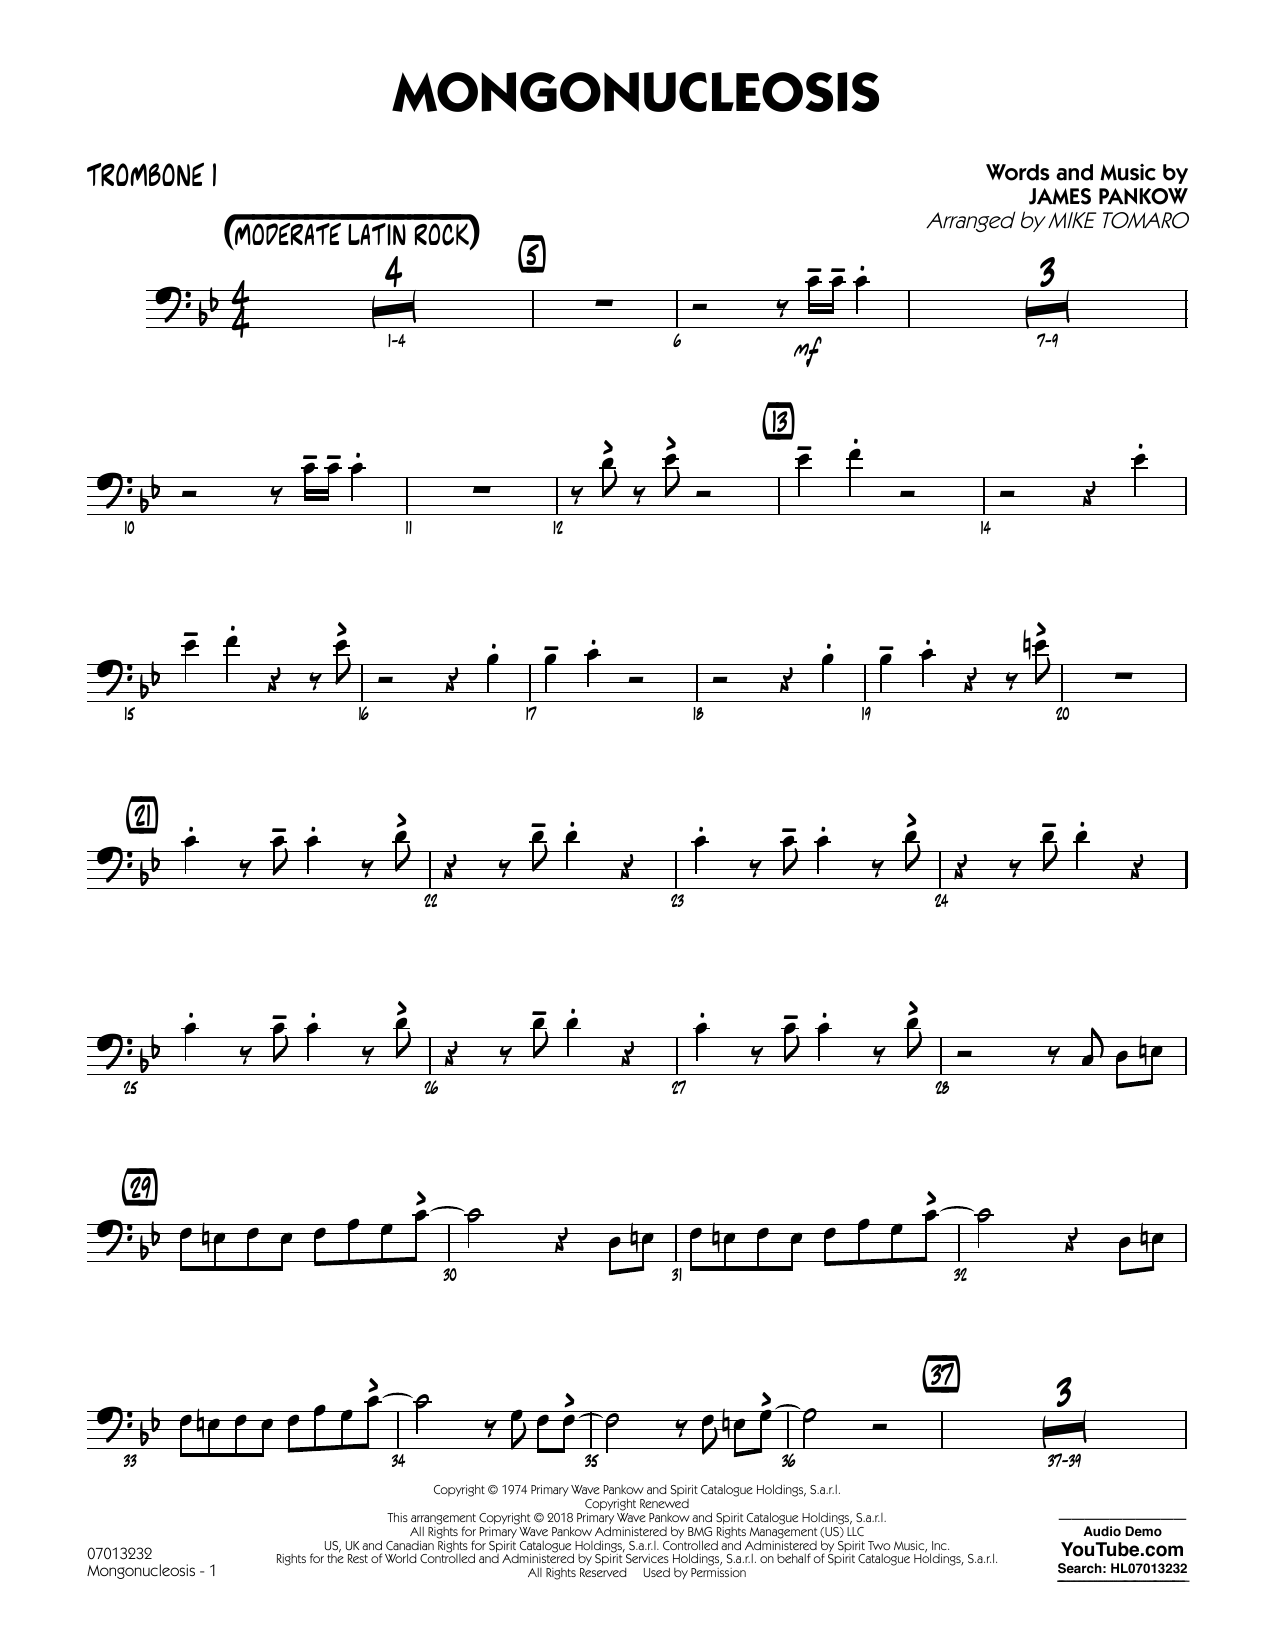 Chicago Mongonucleosis (arr. Mike Tomaro) - Trombone 1 sheet music notes and chords